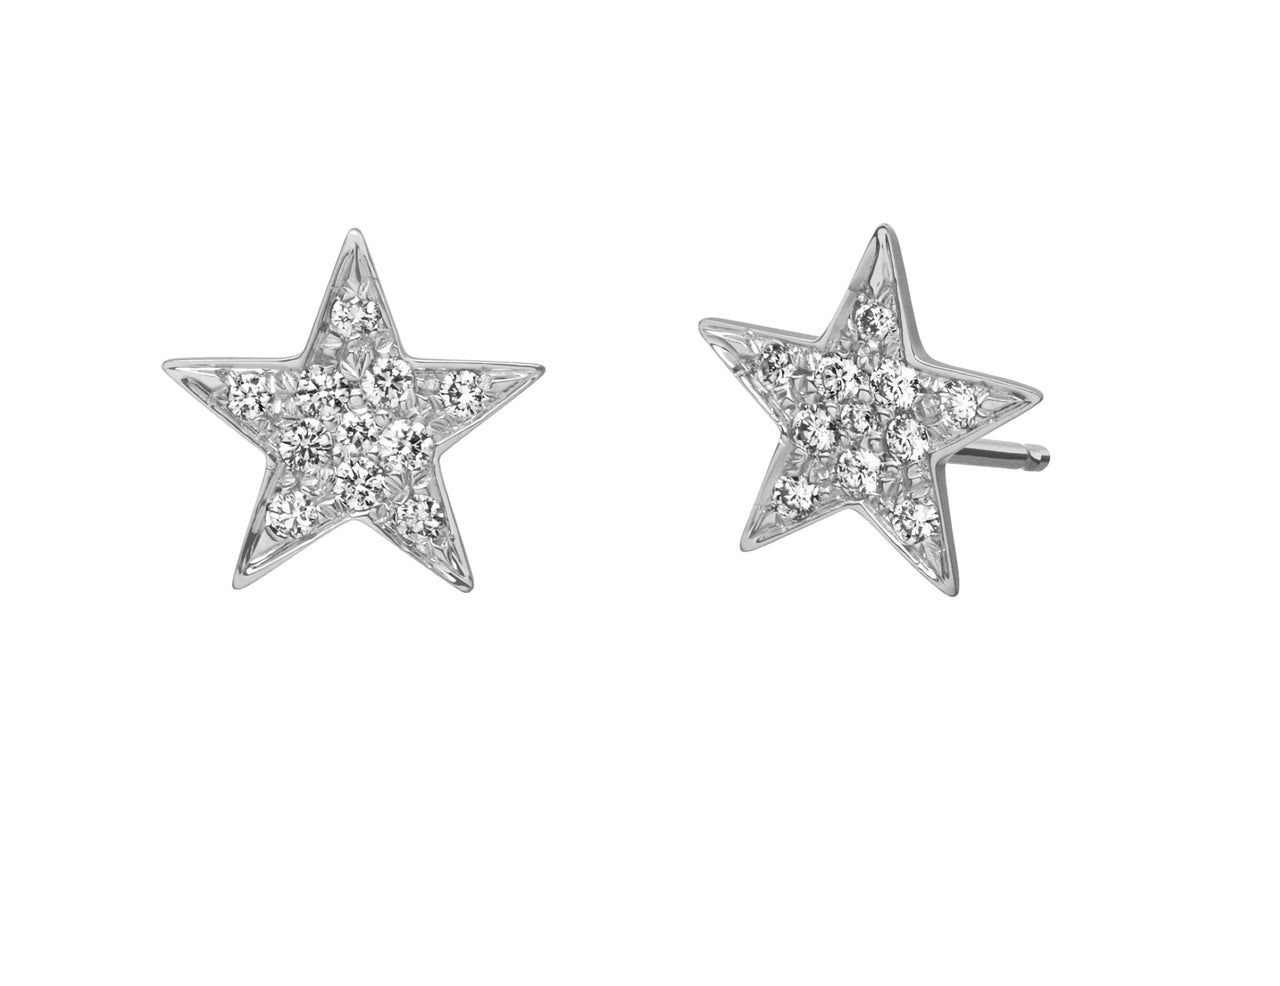 little star pave diamond encrusted stud earrings in 18k white gold by finn by candice pool neistat